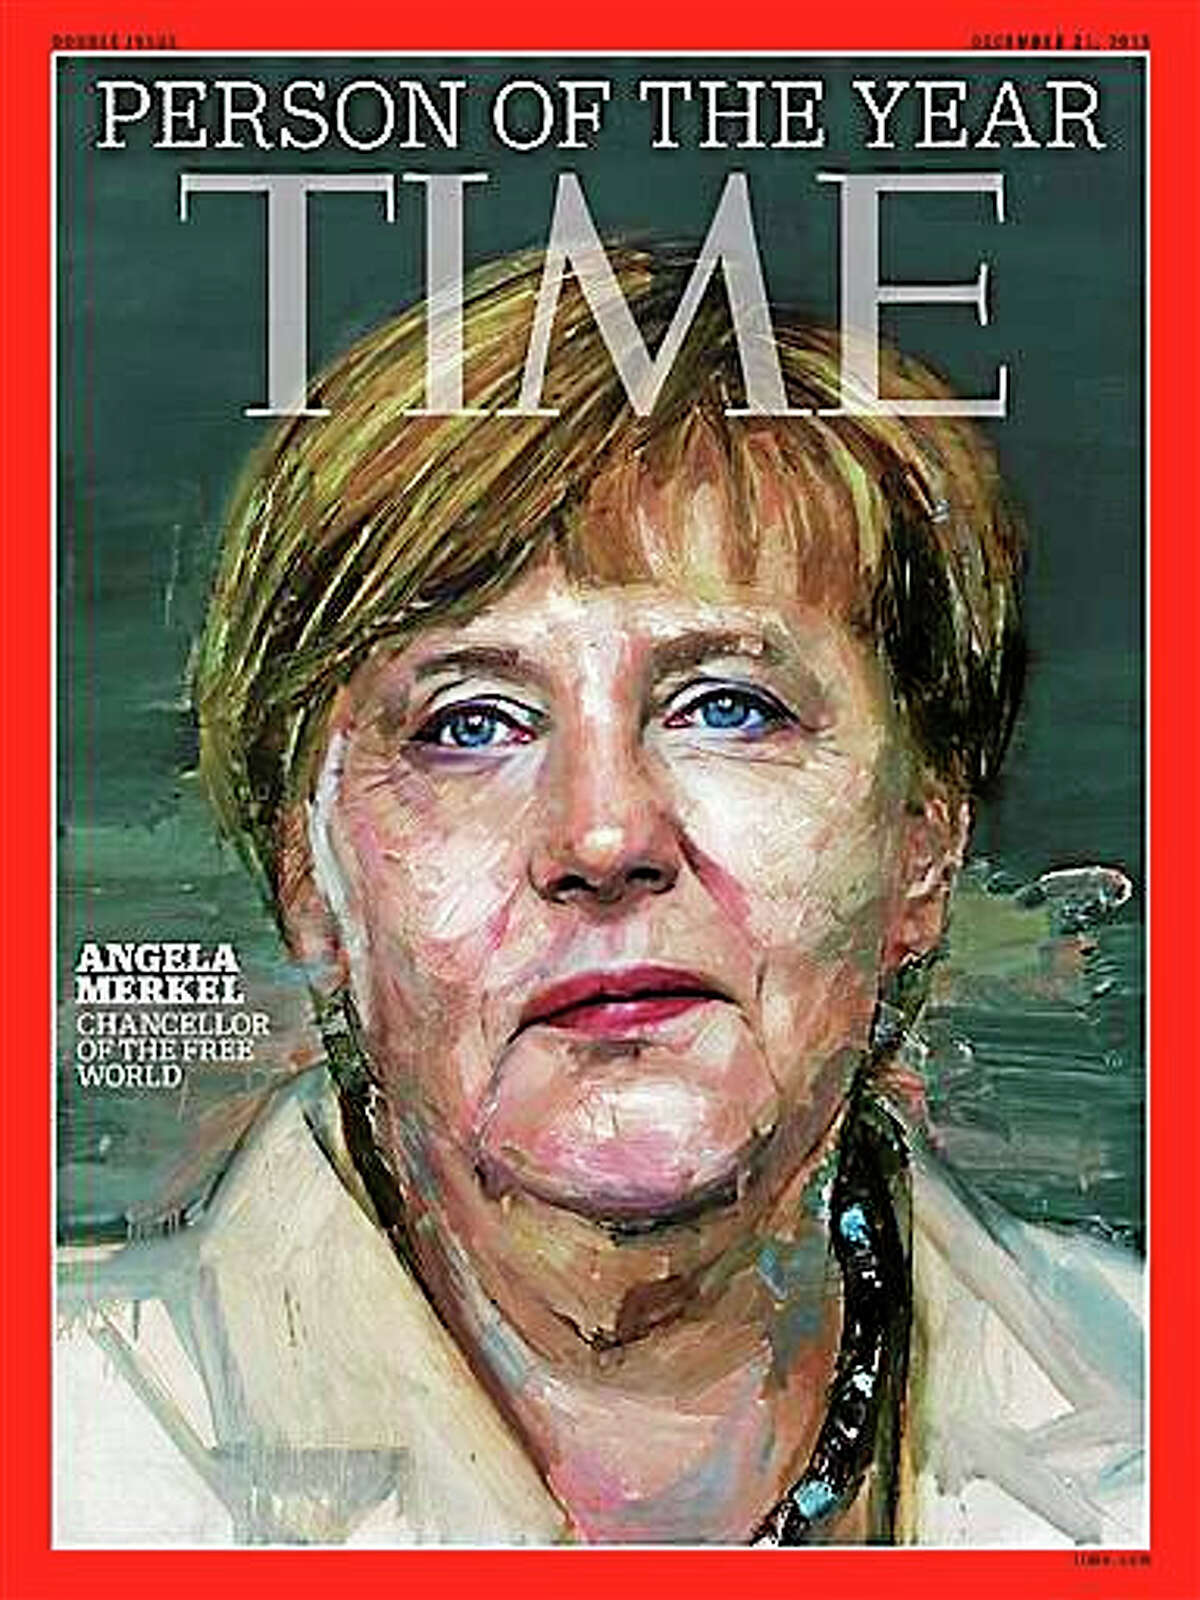 Cover of Time, showing Angela Merkel as Person of the Year